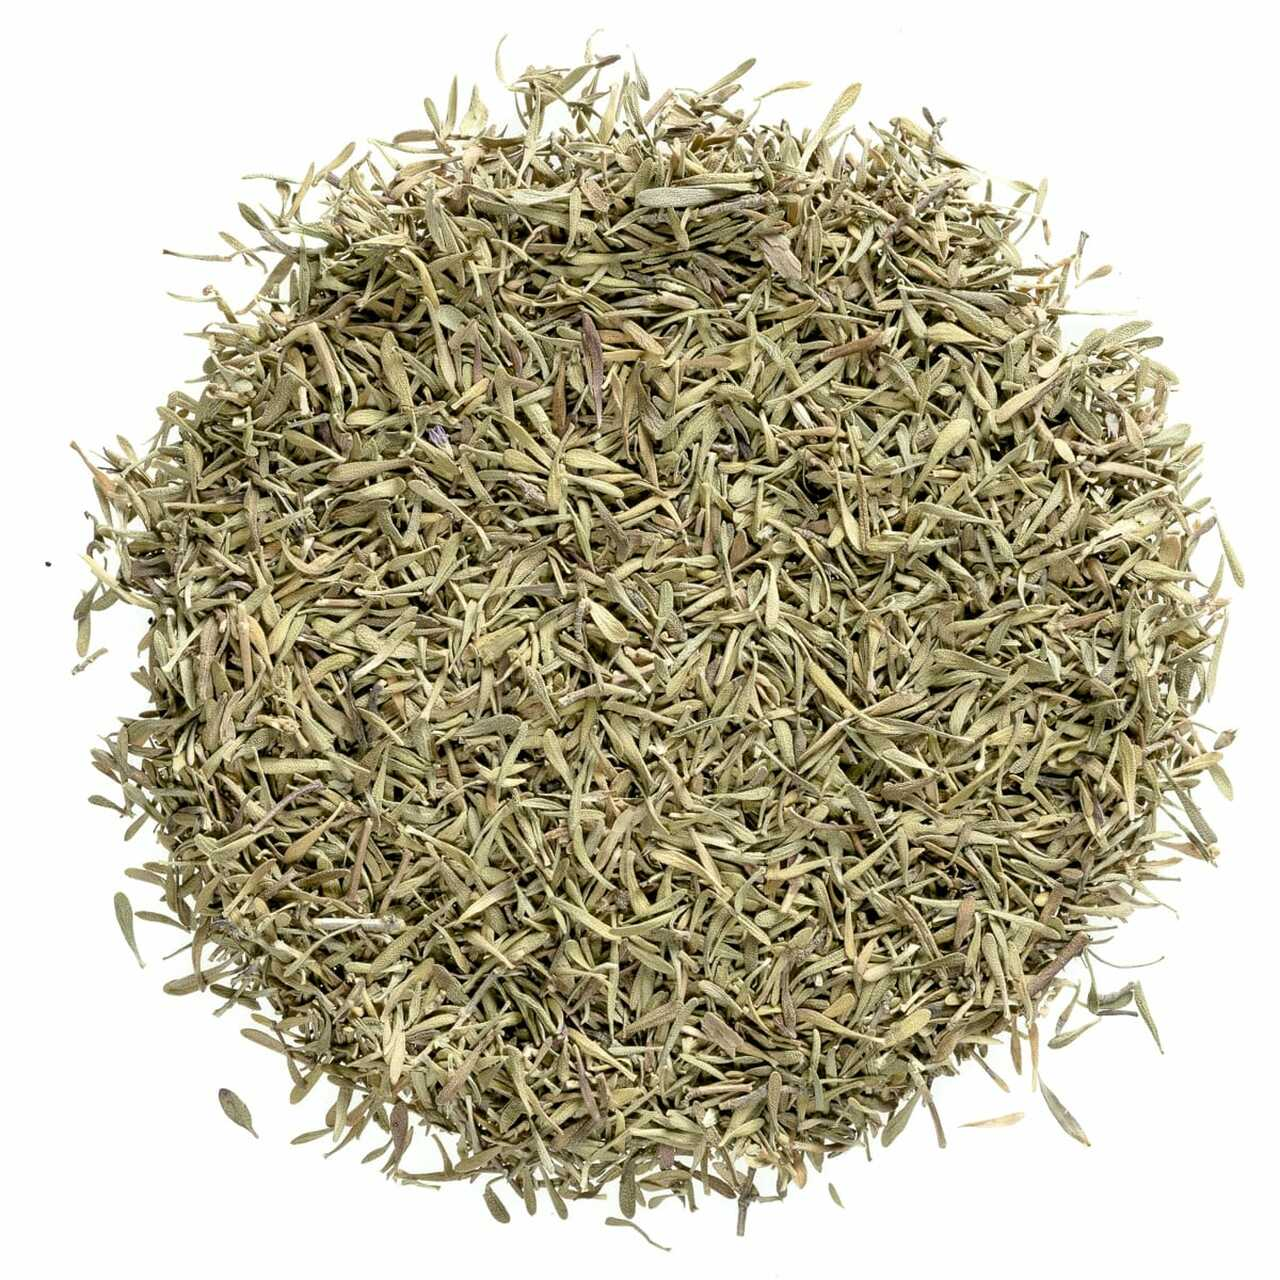 dried-thyme-20g-image